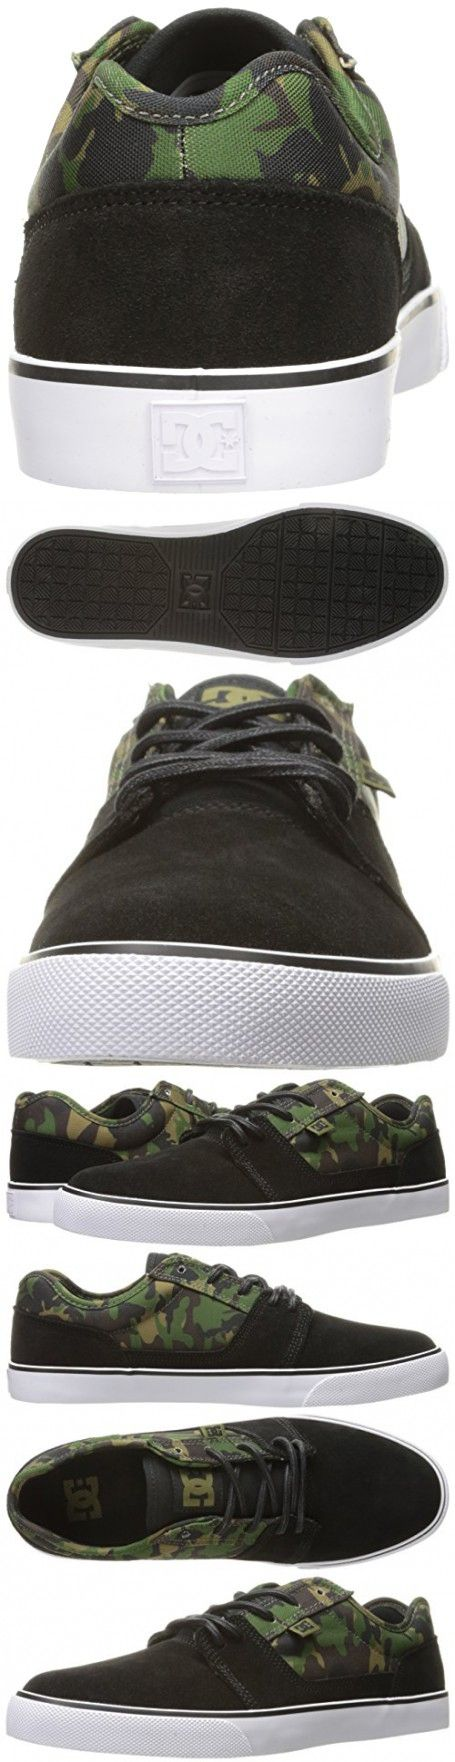 Pin on DC Shoes Mens Shoes